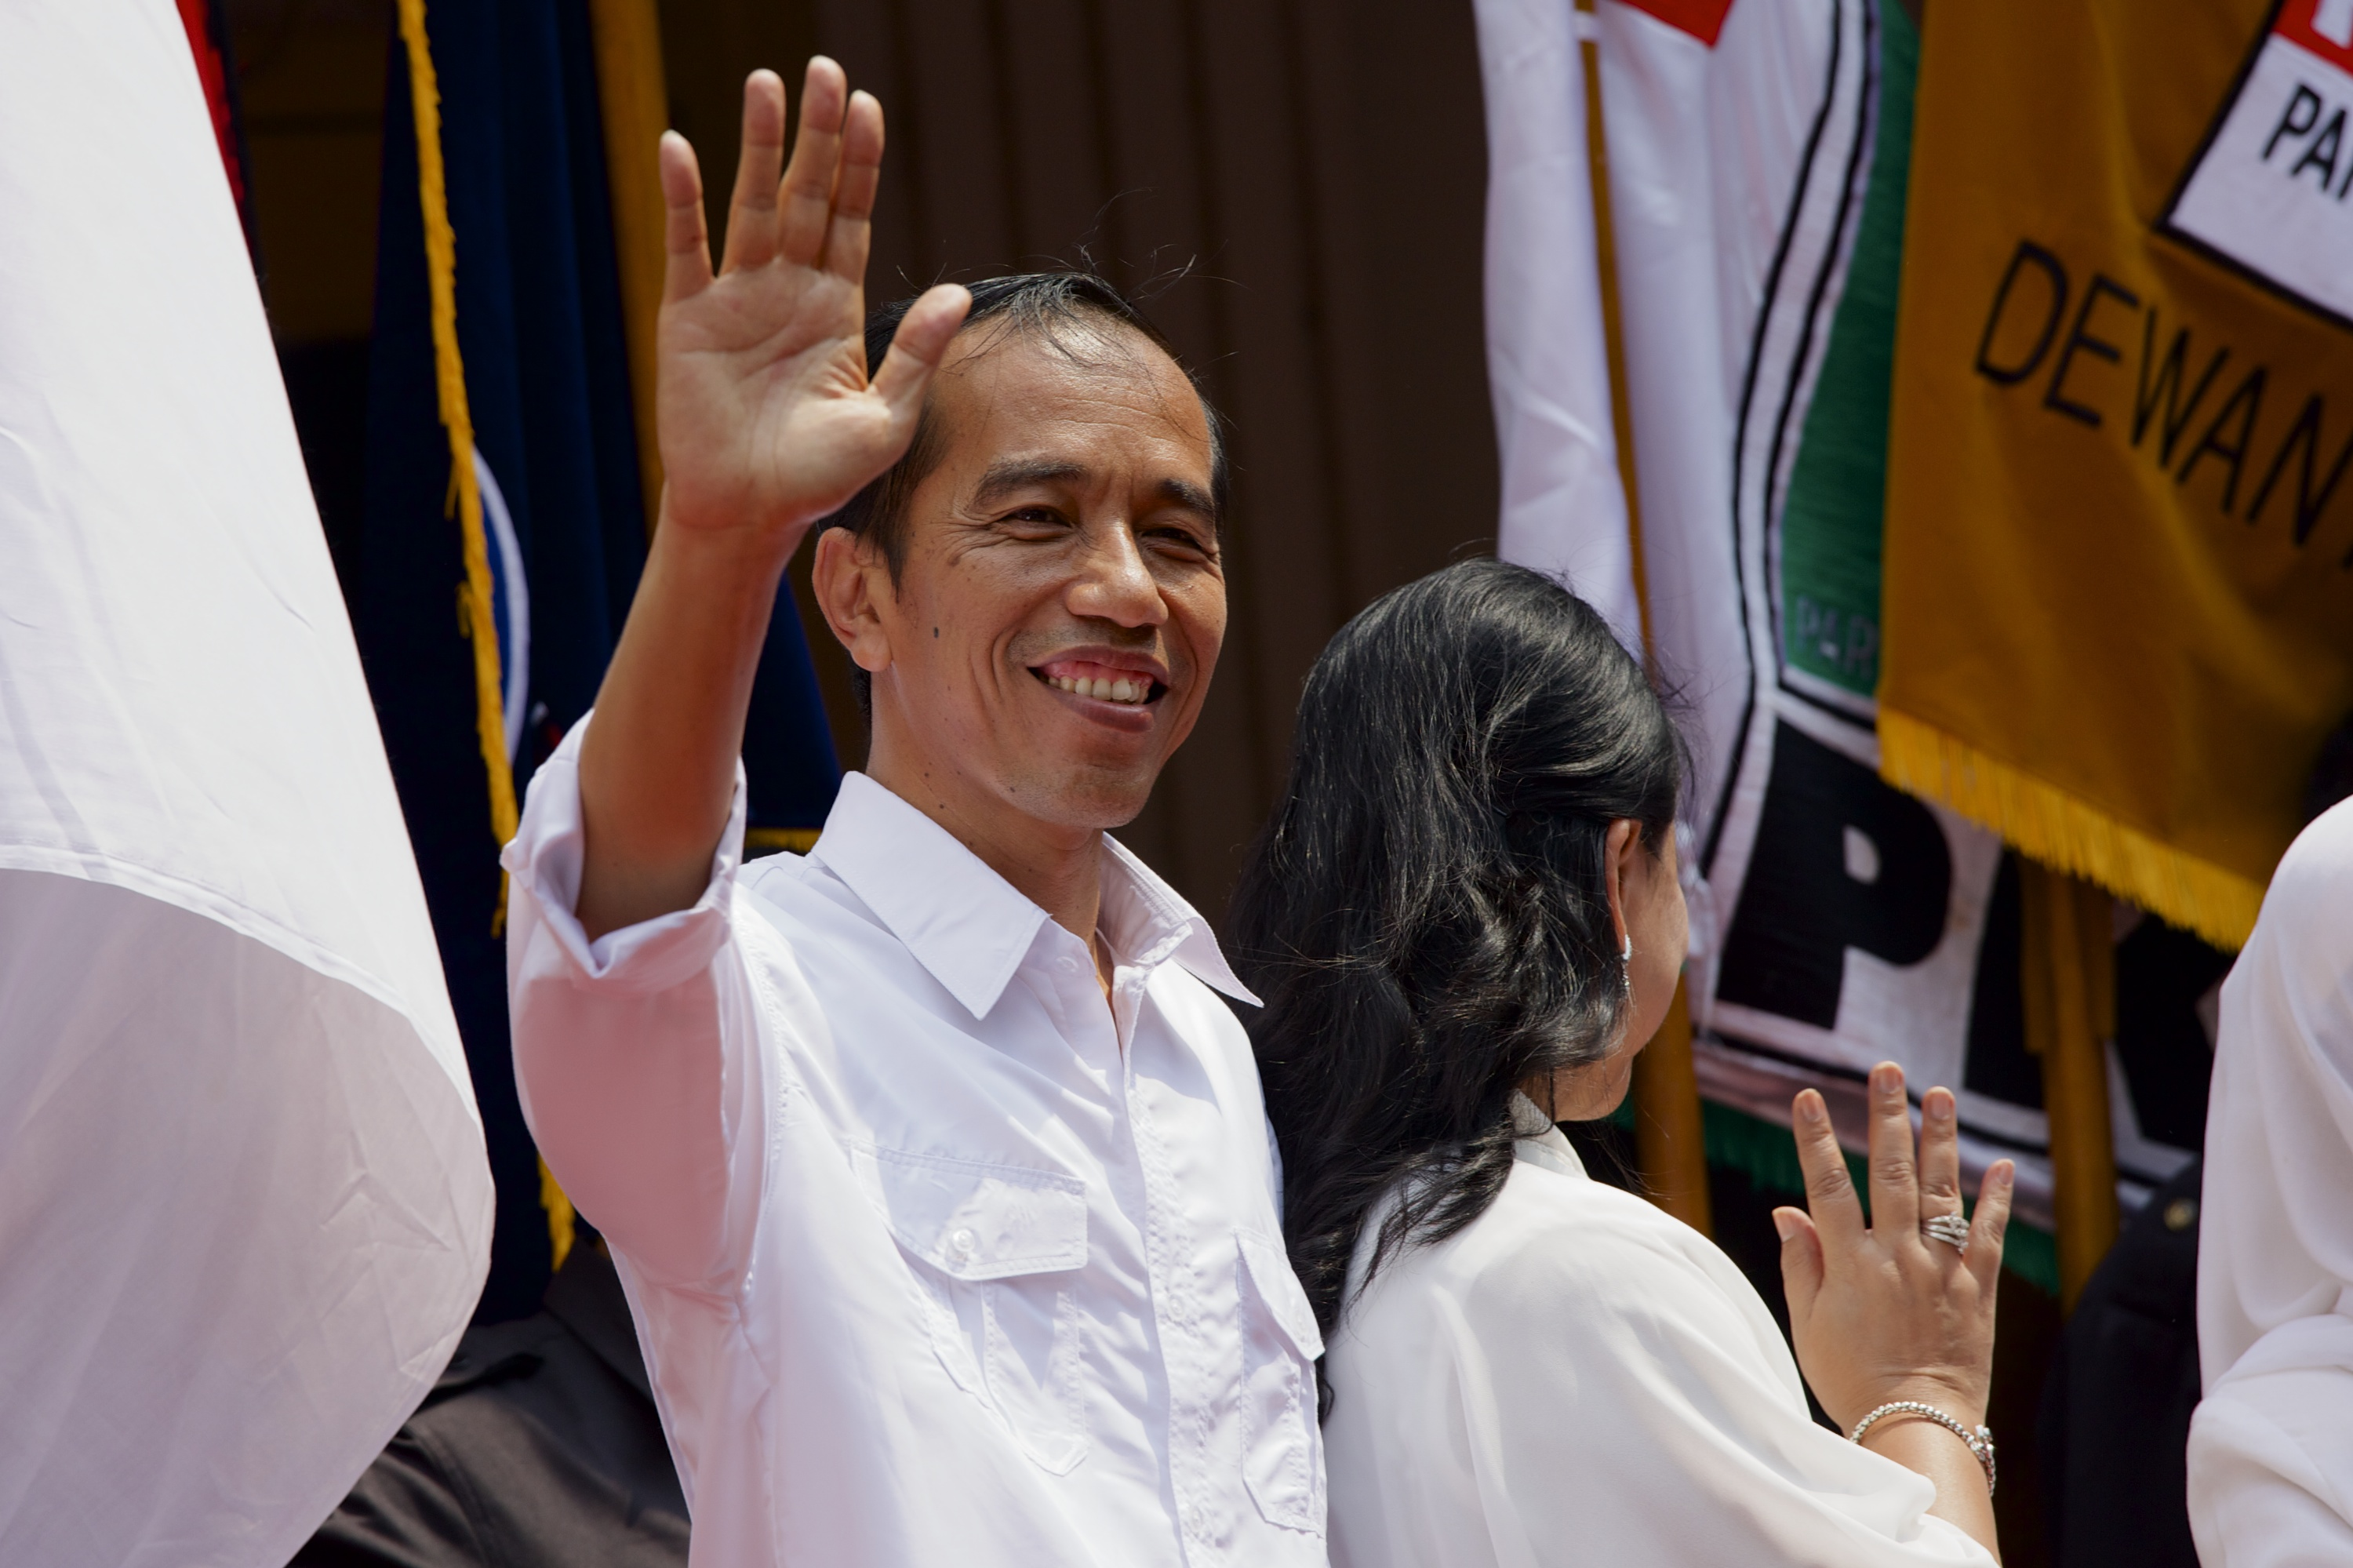 Indonesian presidential candidate Joko Widodo waves to a crowd of supporters after officially naming Jusuf Kalla as his vice-presidential running mate in Jakarta on May 19, 2014